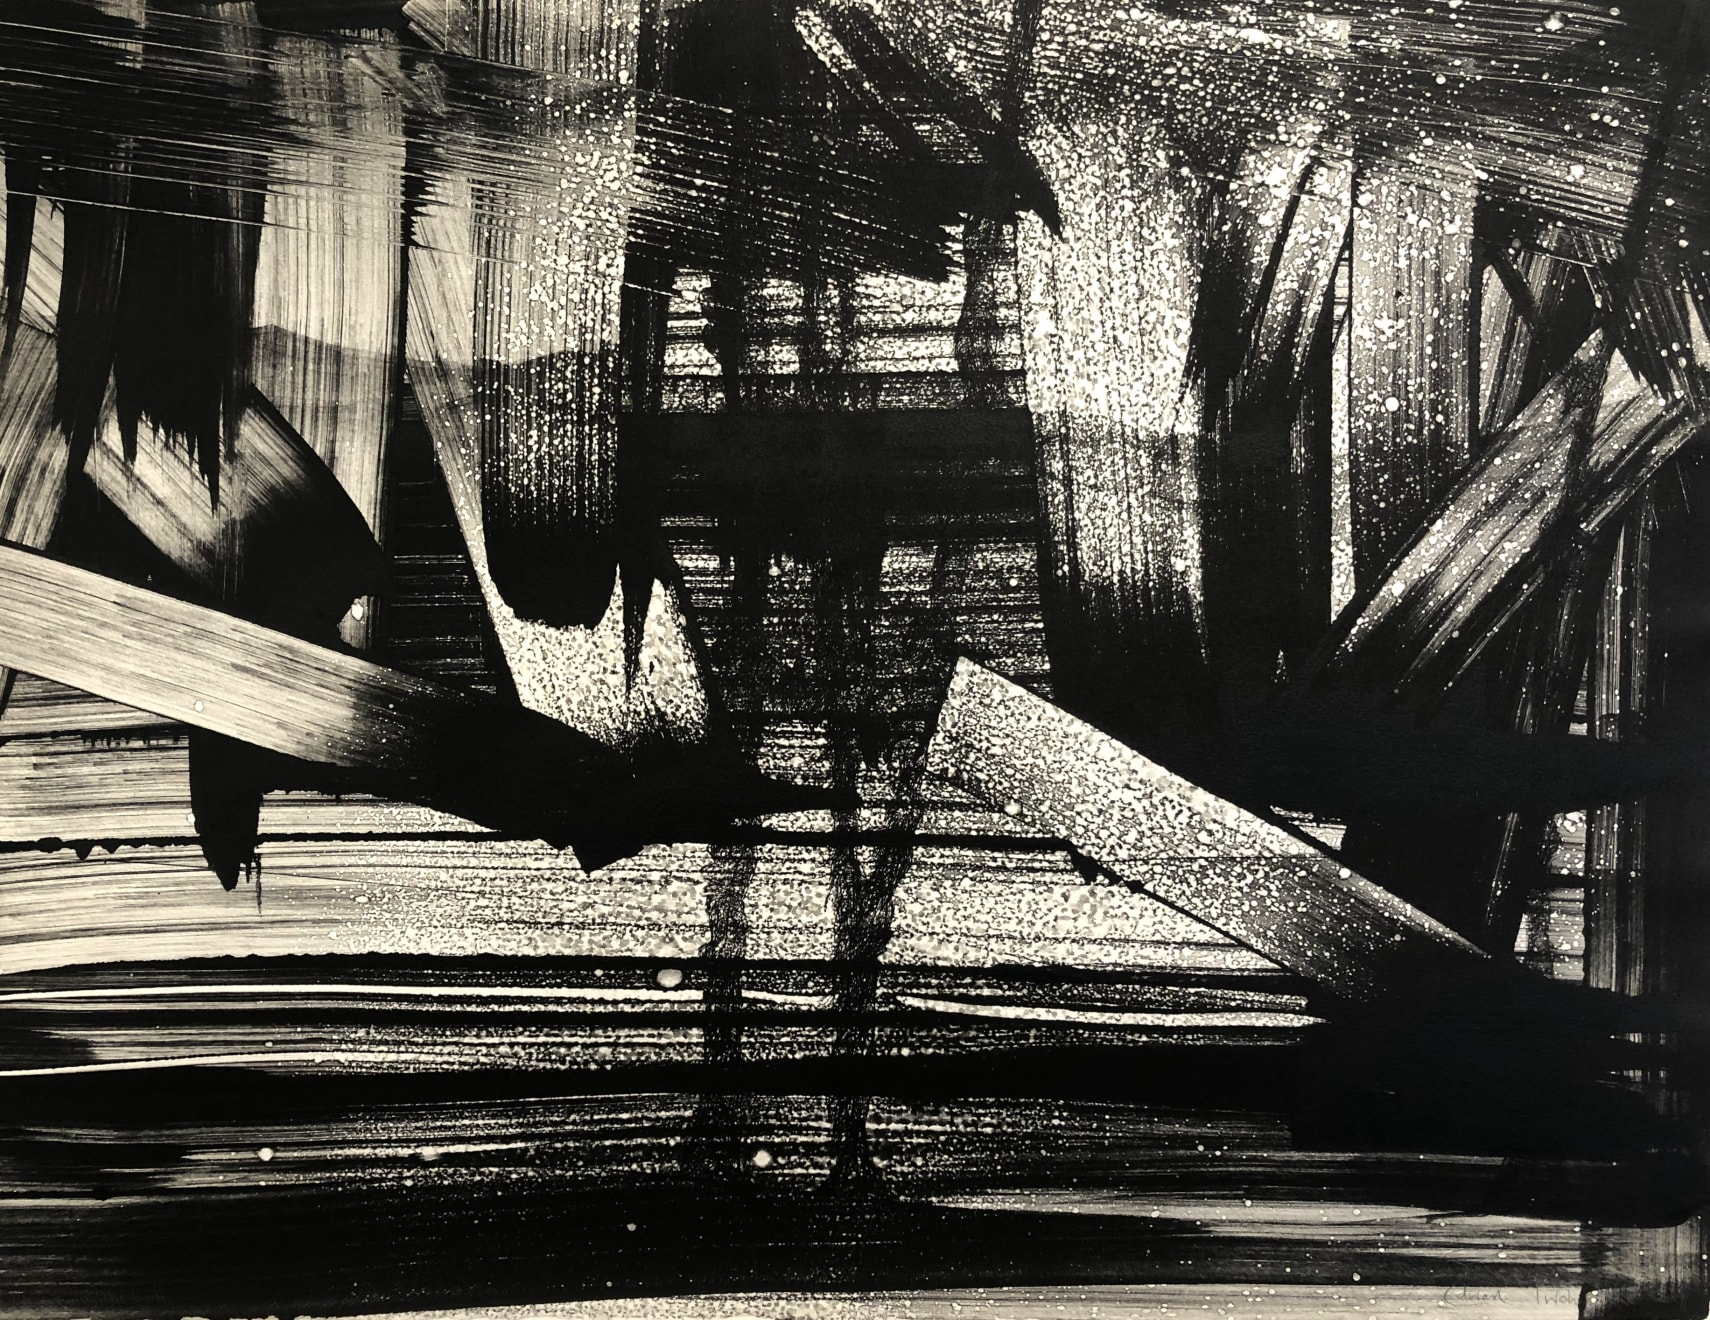 Edward Twohig, Thinking of Pierre Soulages in Wiltshire (Chisbury Storm), 2019